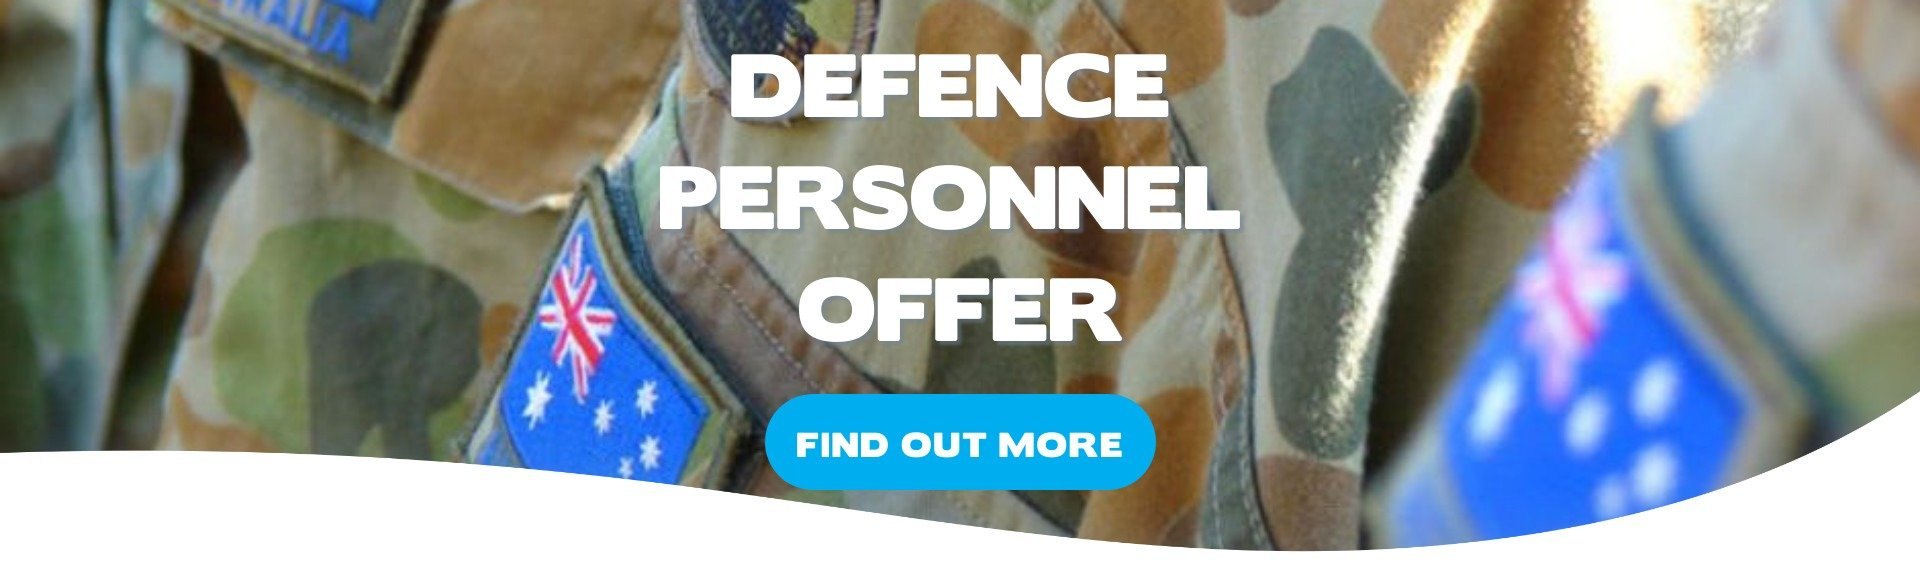 Defence-Personnel-Offer